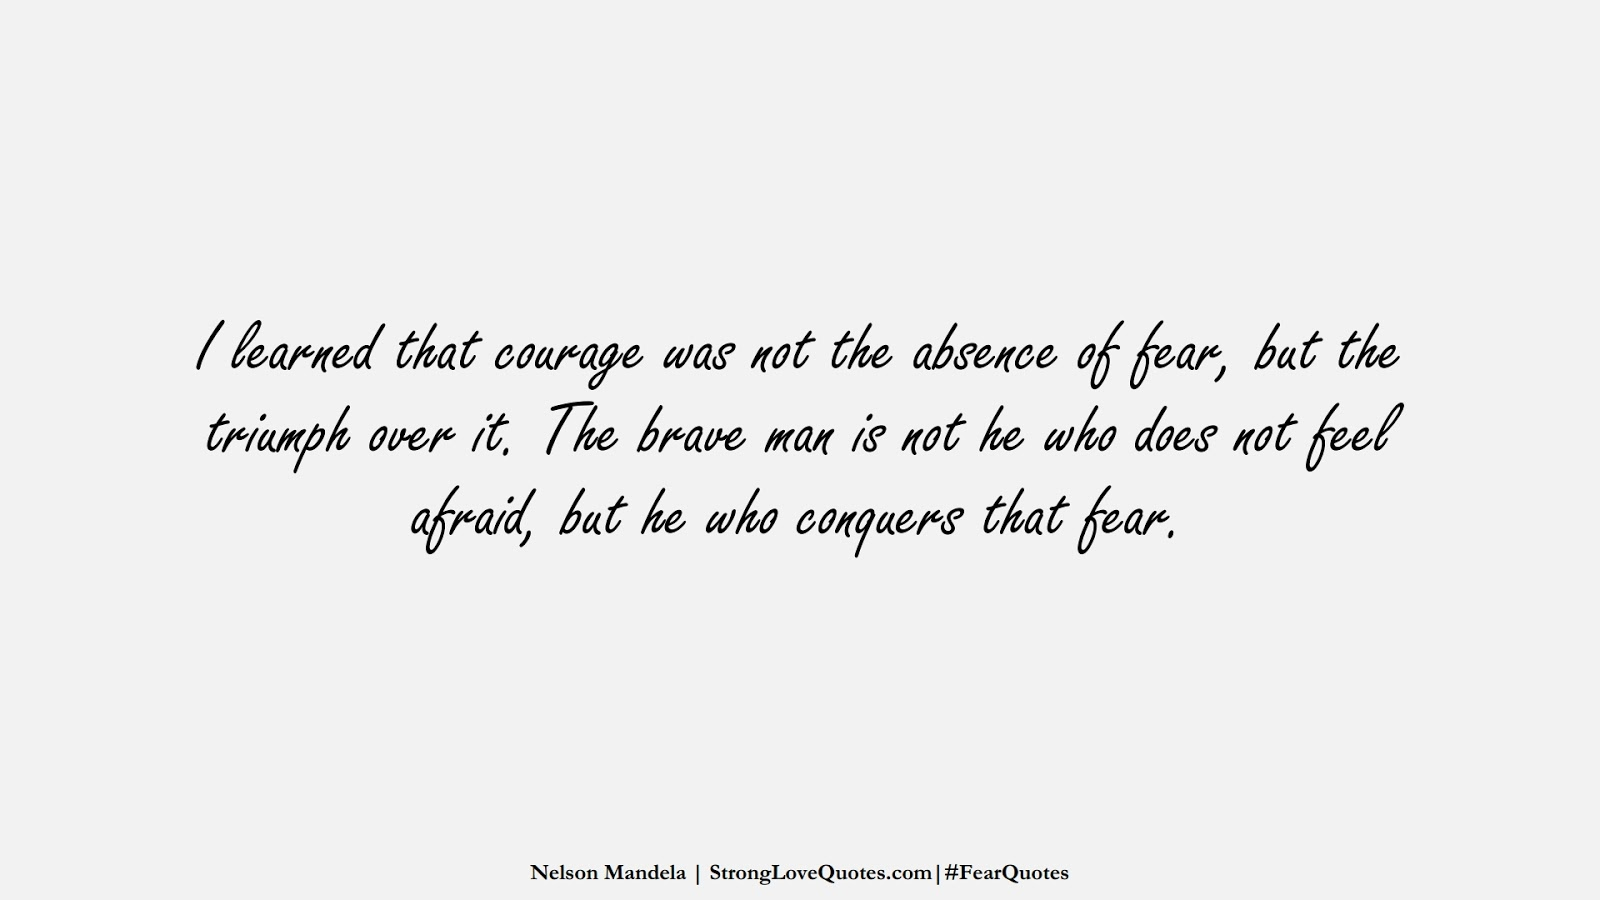 I learned that courage was not the absence of fear, but the triumph over it. The brave man is not he who does not feel afraid, but he who conquers that fear. (Nelson Mandela);  #FearQuotes